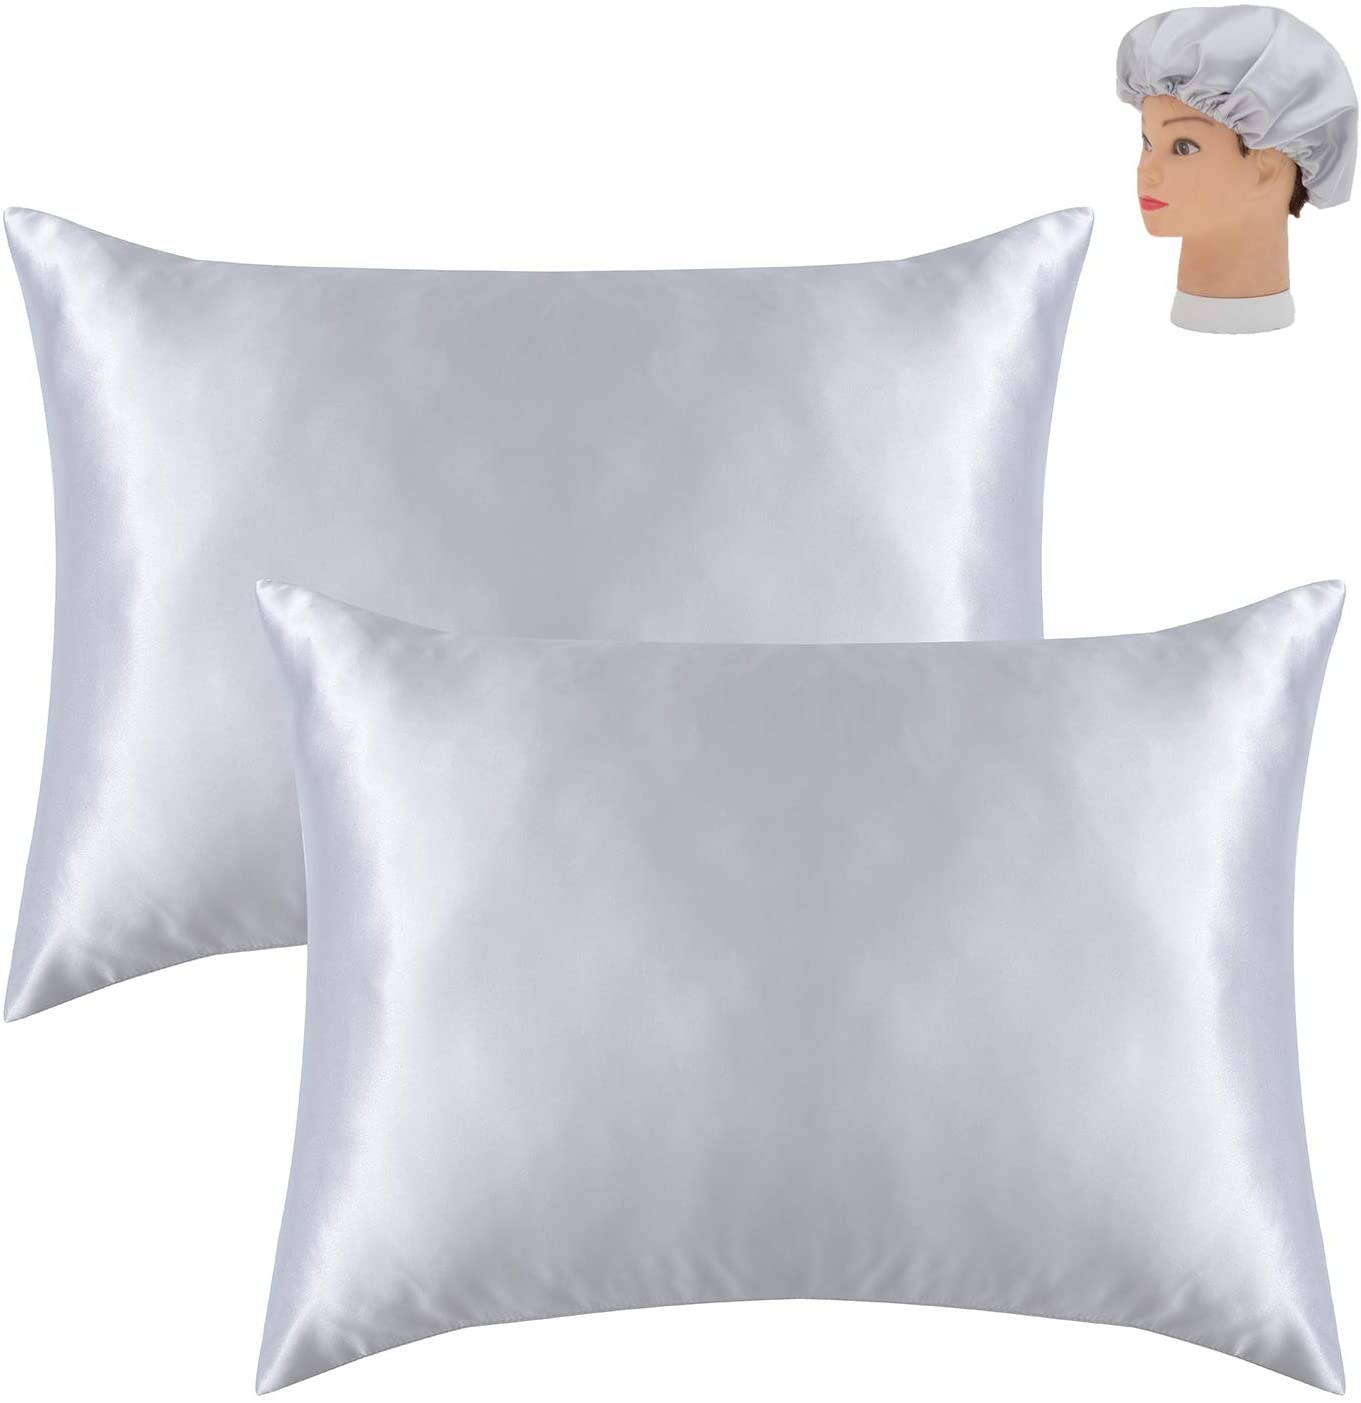 Kingria Satin Pillowcase King Size Zipper Free,2 Pack,Silver Grey,20x36 inches- Pillowcase for Hair and Skin-Satin Pillow Covers with Envelope Closure